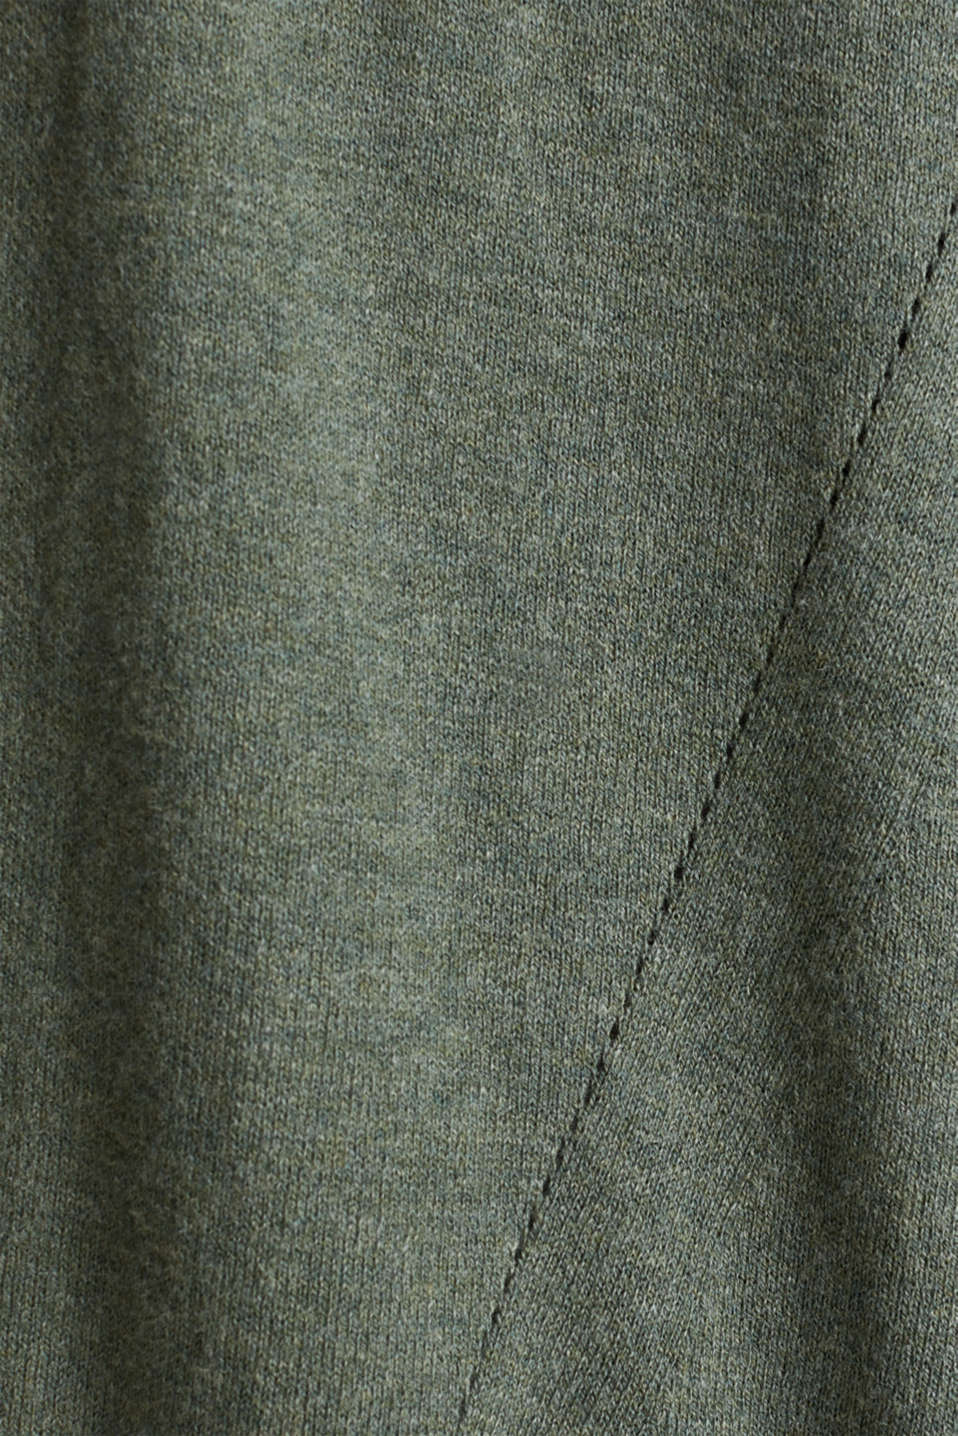 With linen: open cardigan with open-work pattern details, KHAKI GREEN 5, detail image number 4